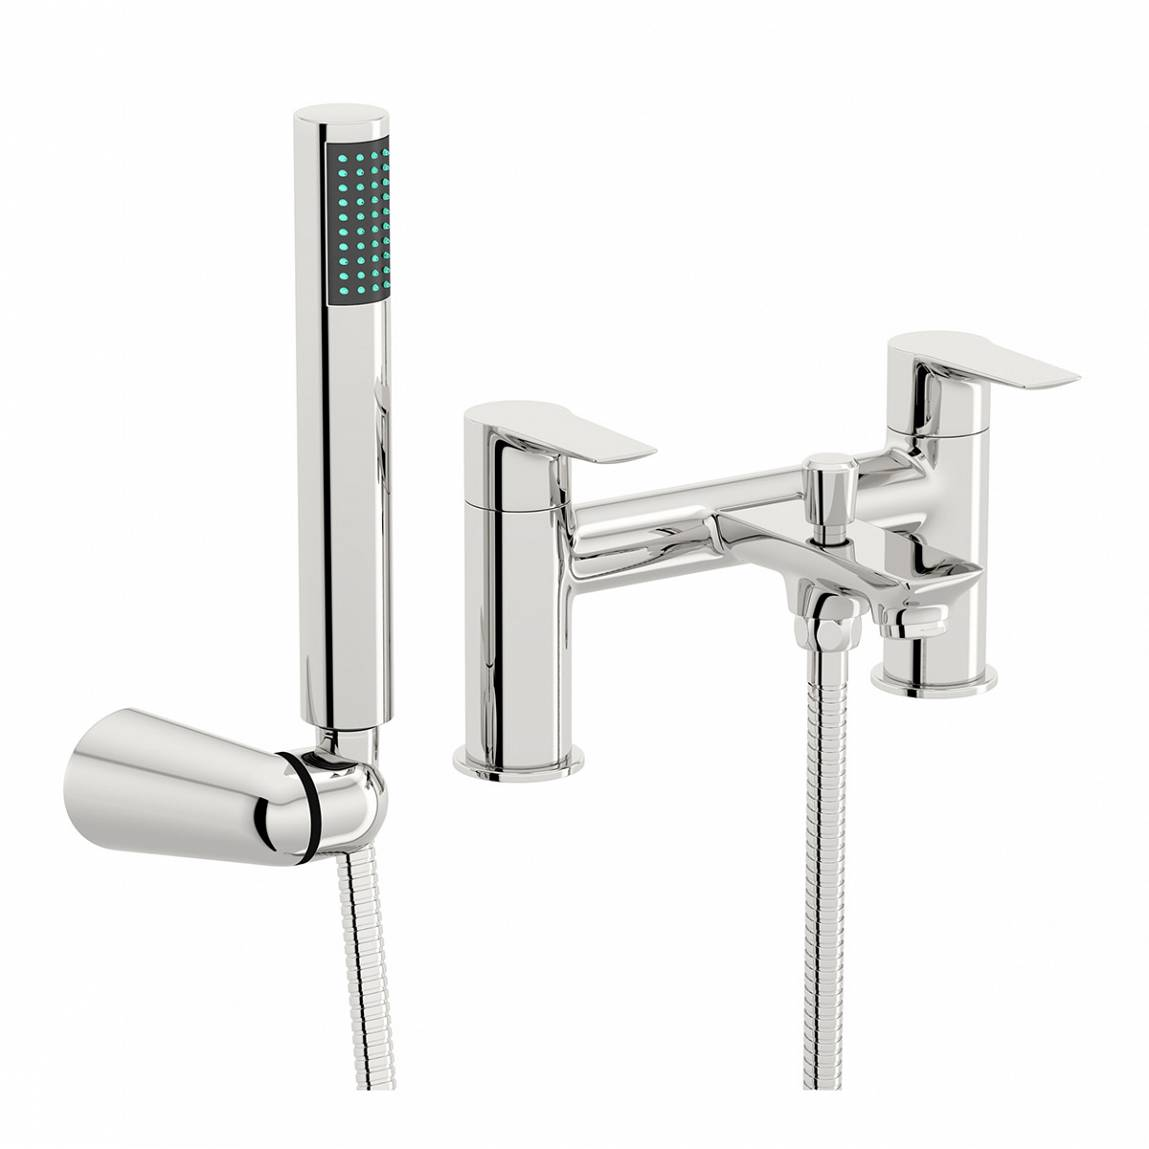 Image of Windermere Bath Shower Mixer